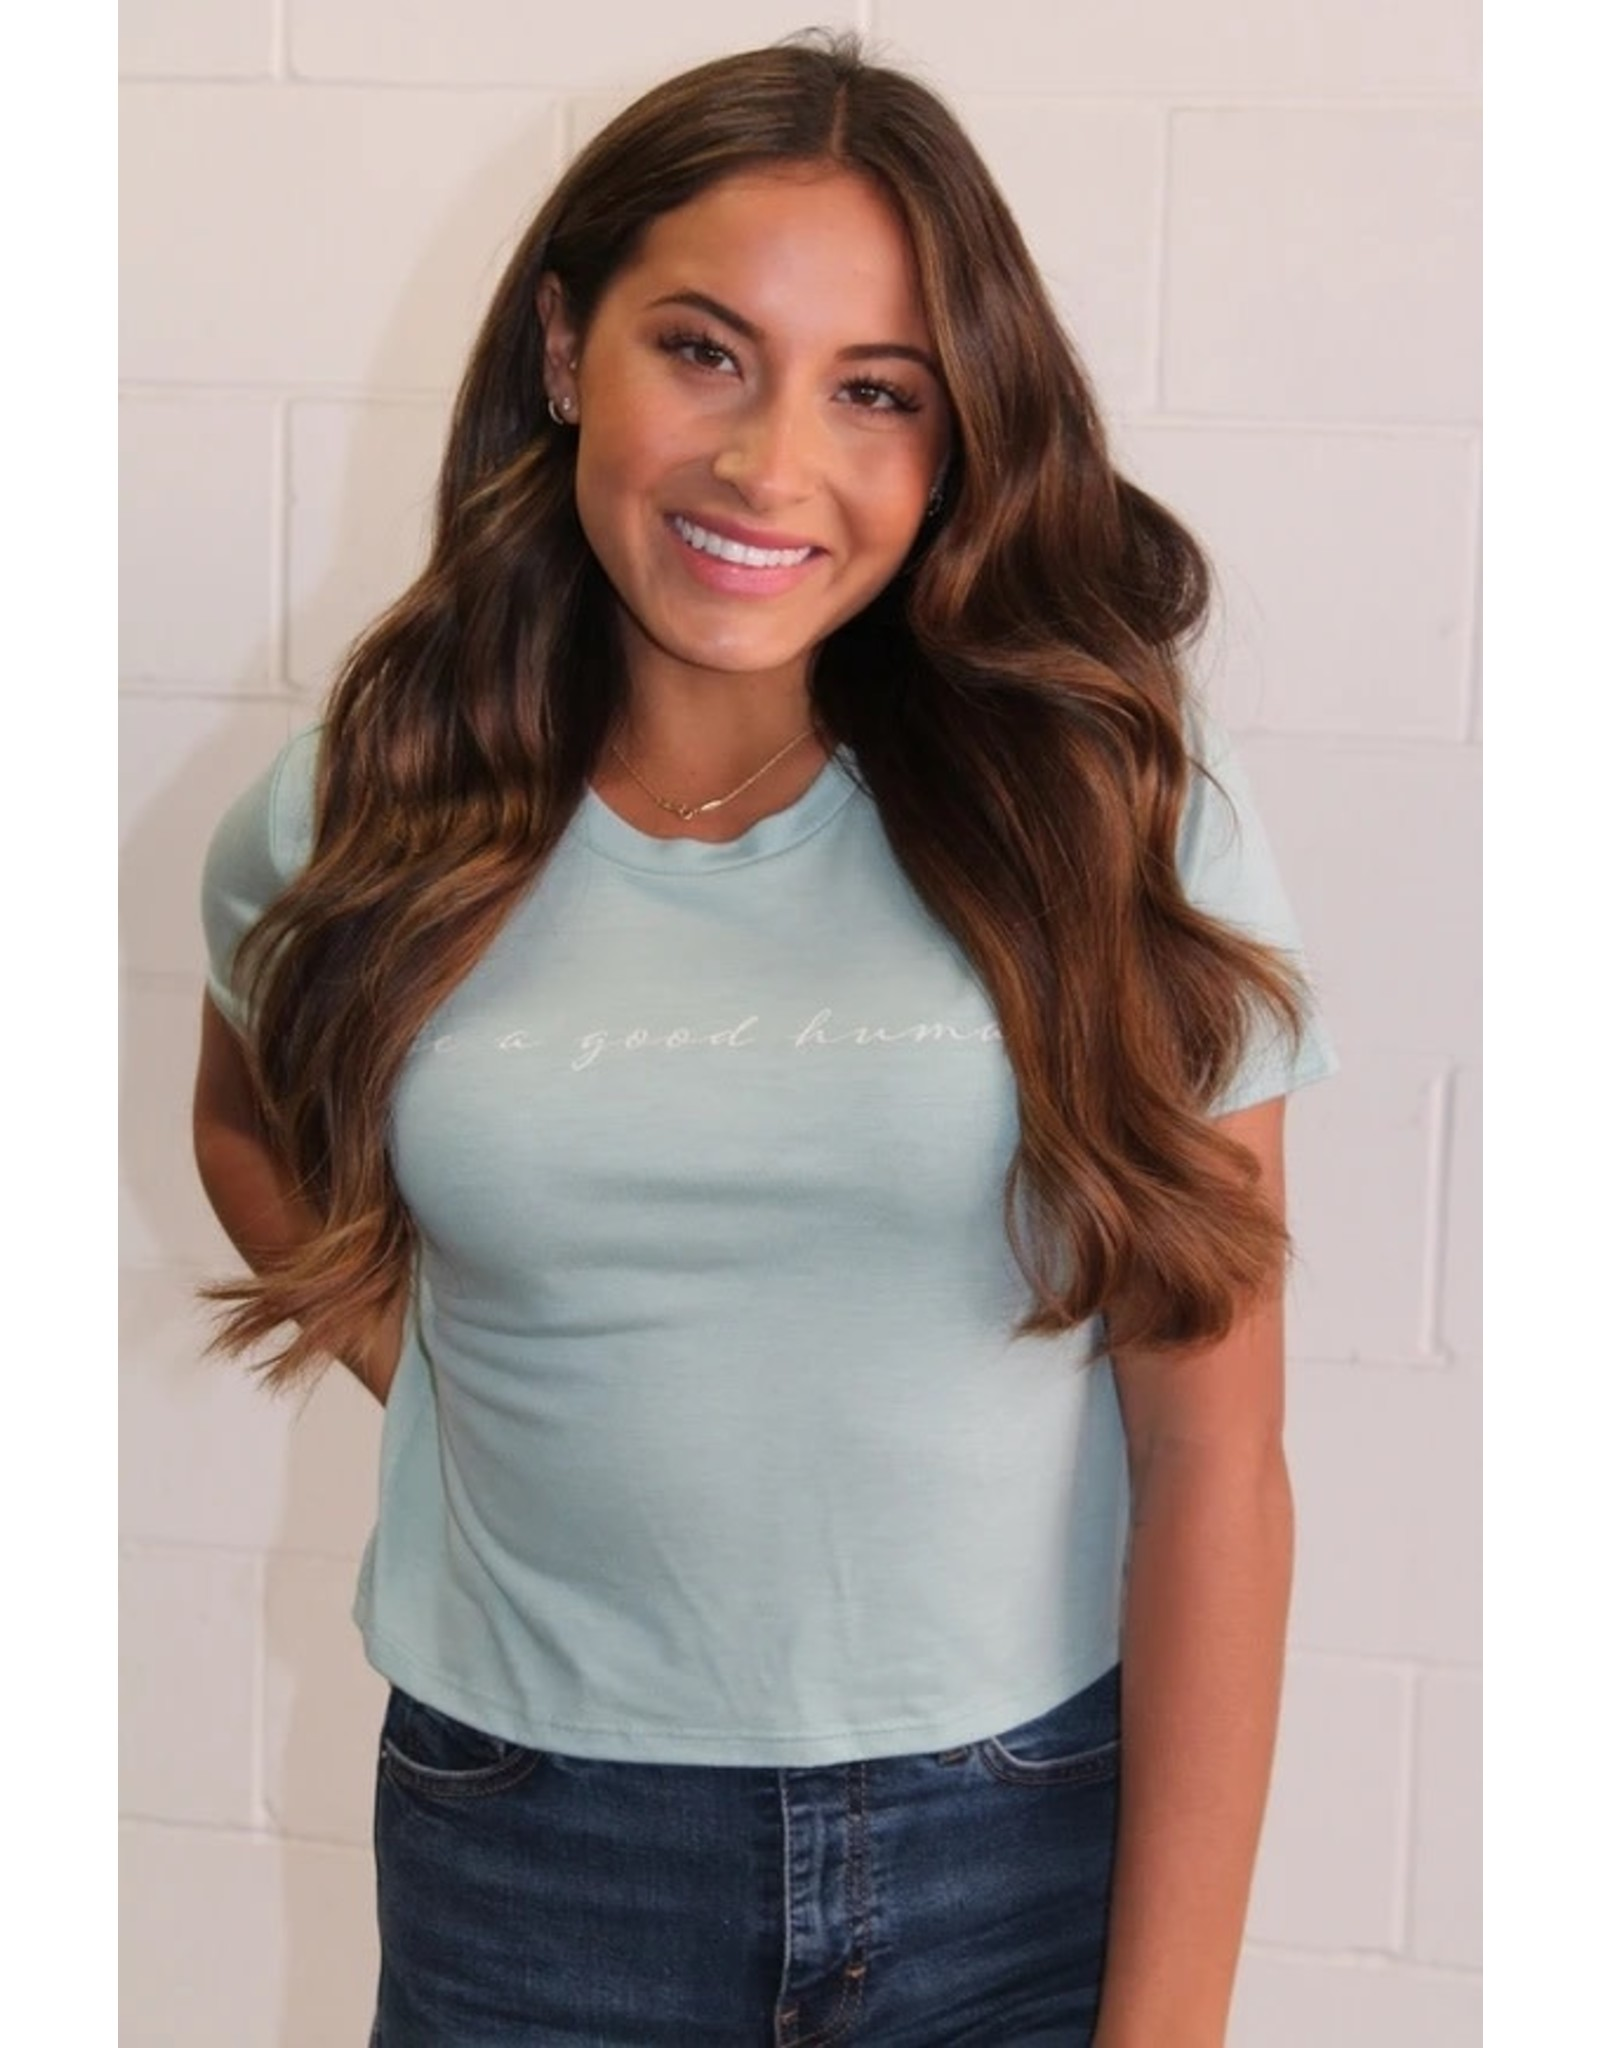 Panache Accessories Be a Good Human Graphic Cropped Tee